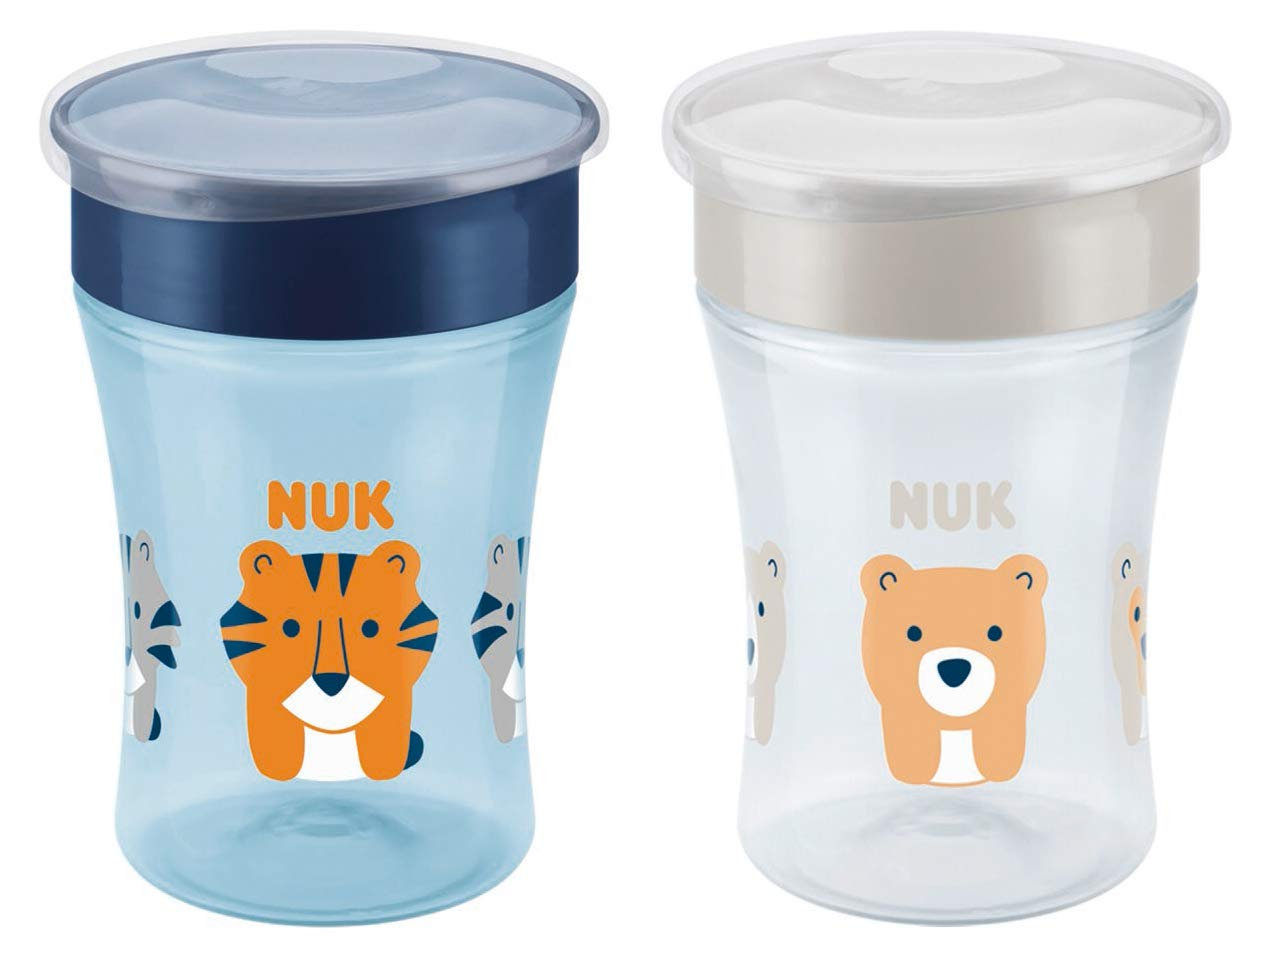 NUK Magic Cup Trinklernbecher 2er-Vorteilspack, 360° Trinkrand